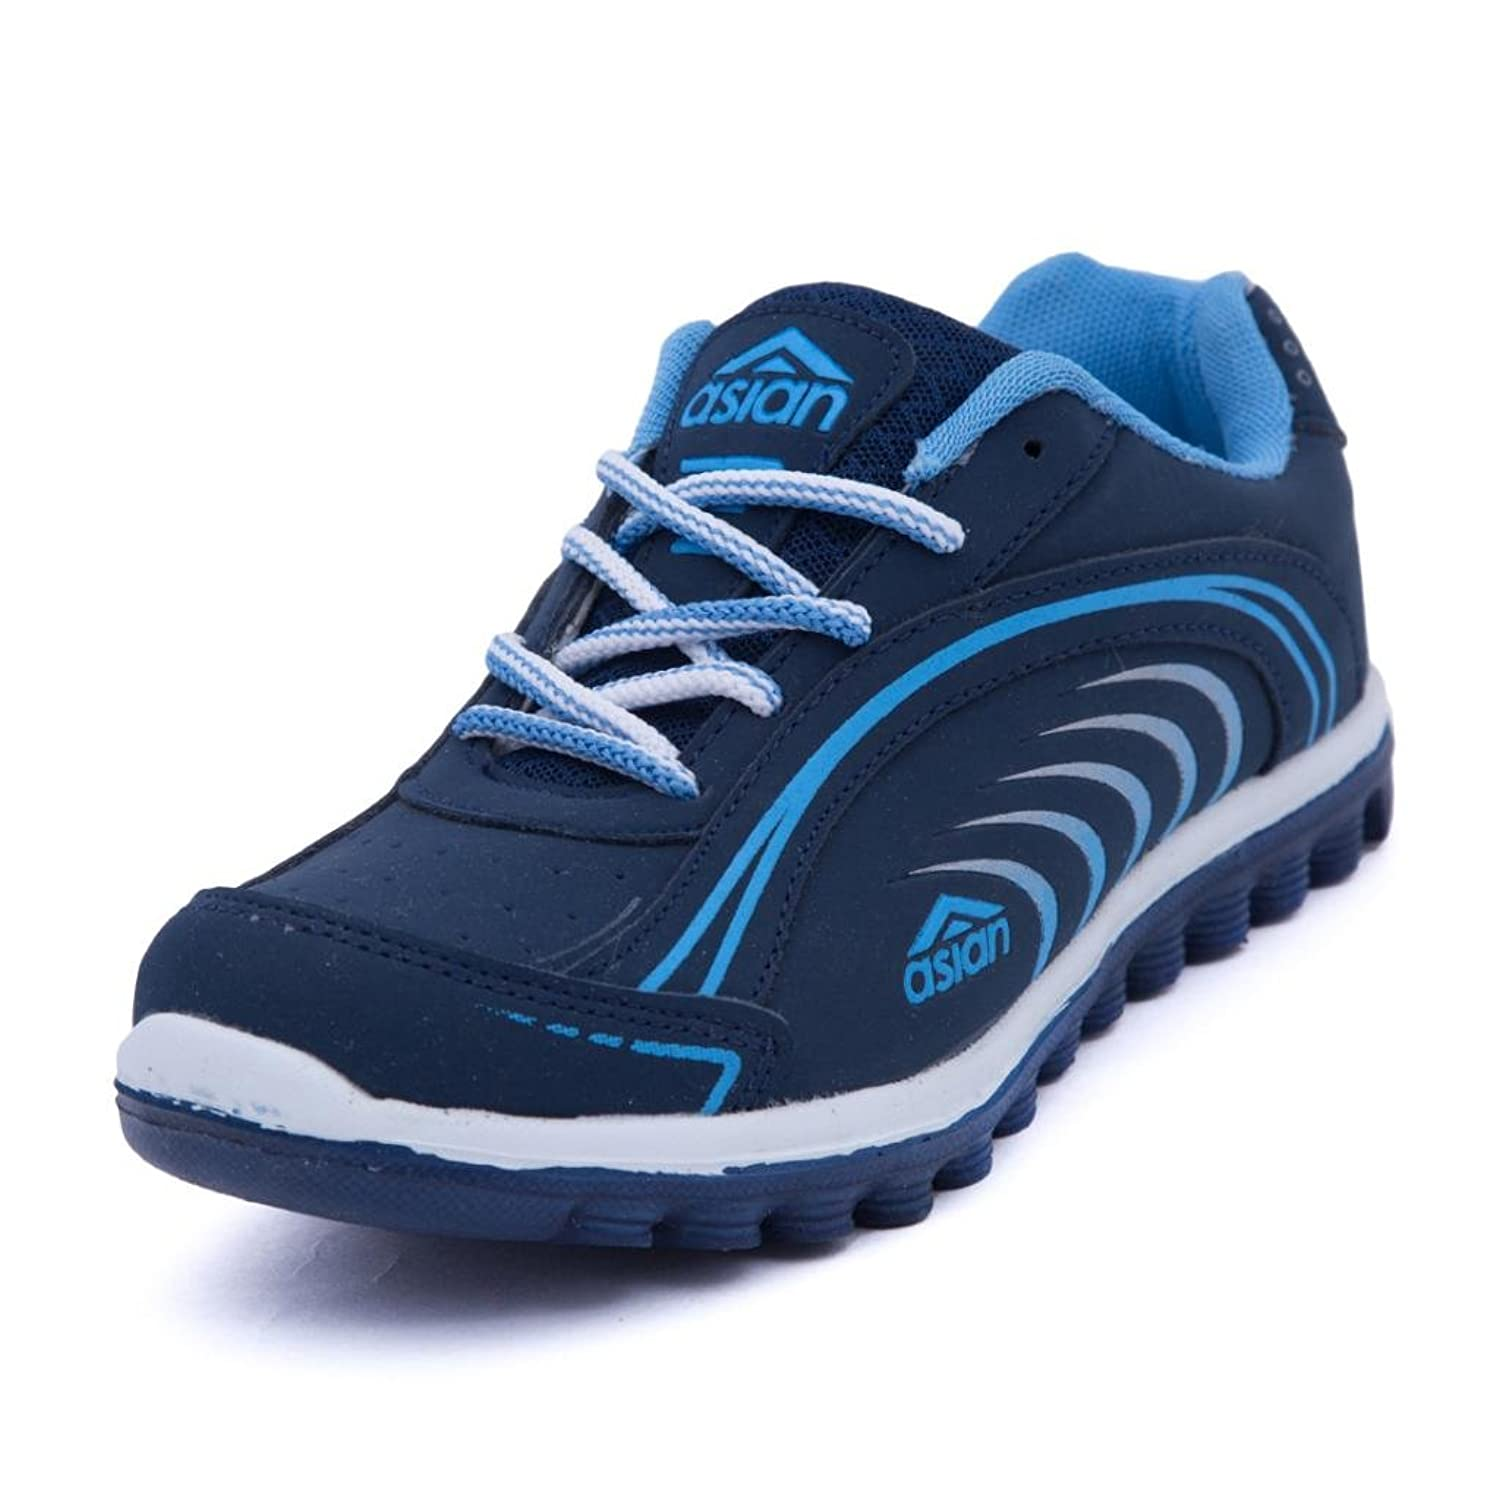 Women Sports Shoes - Clearance Sale discount offer  image 5